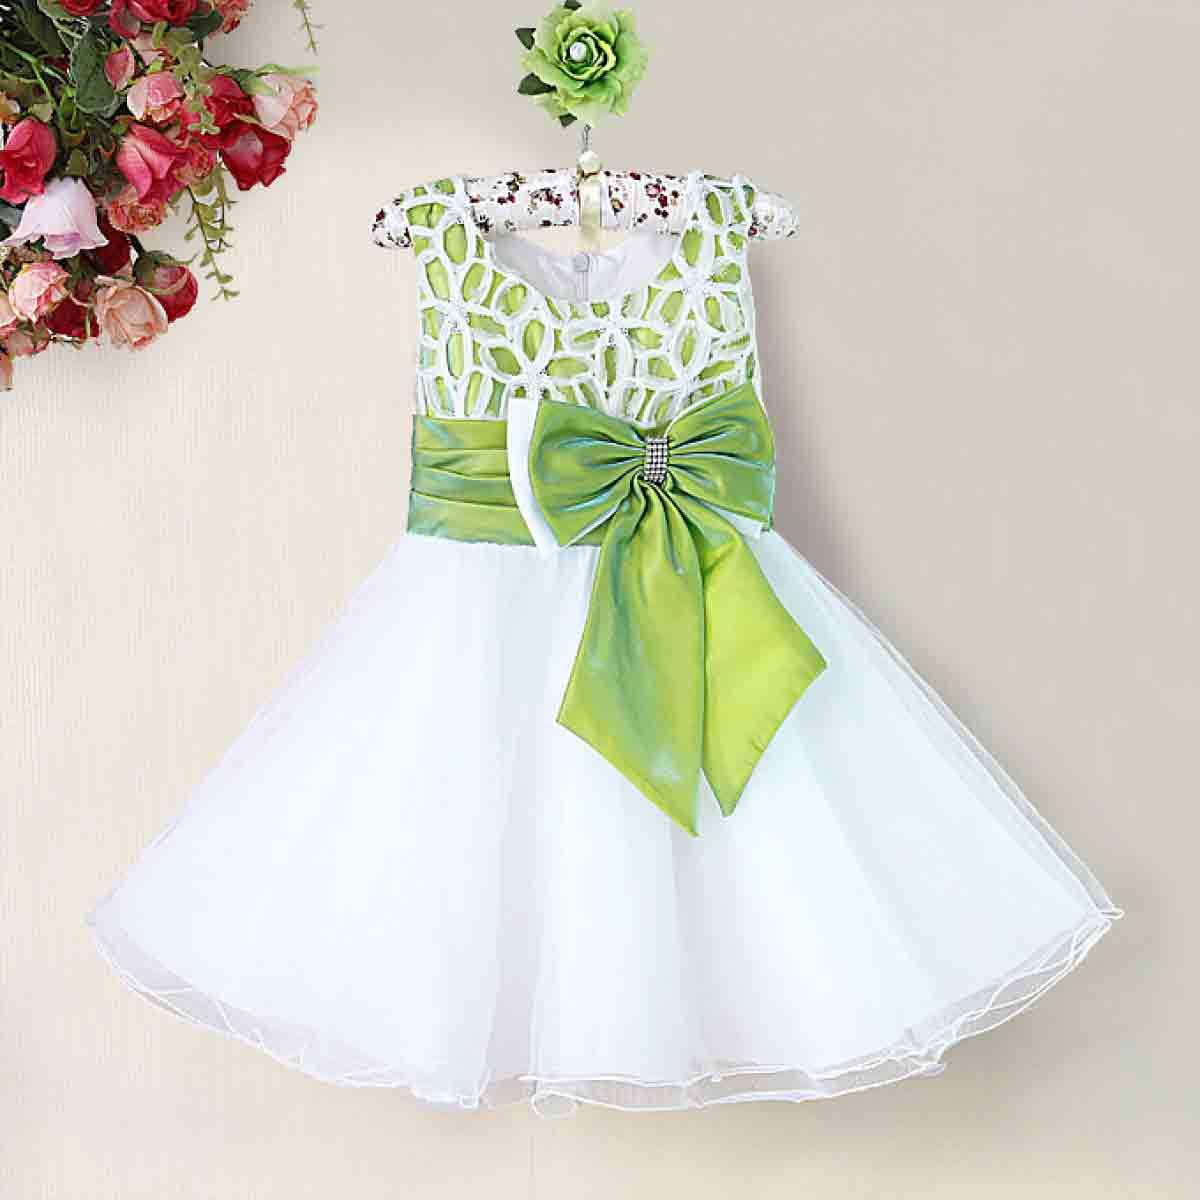 aff78cf7e White and green frock with bow | B | Princess dress kids, Kids ...